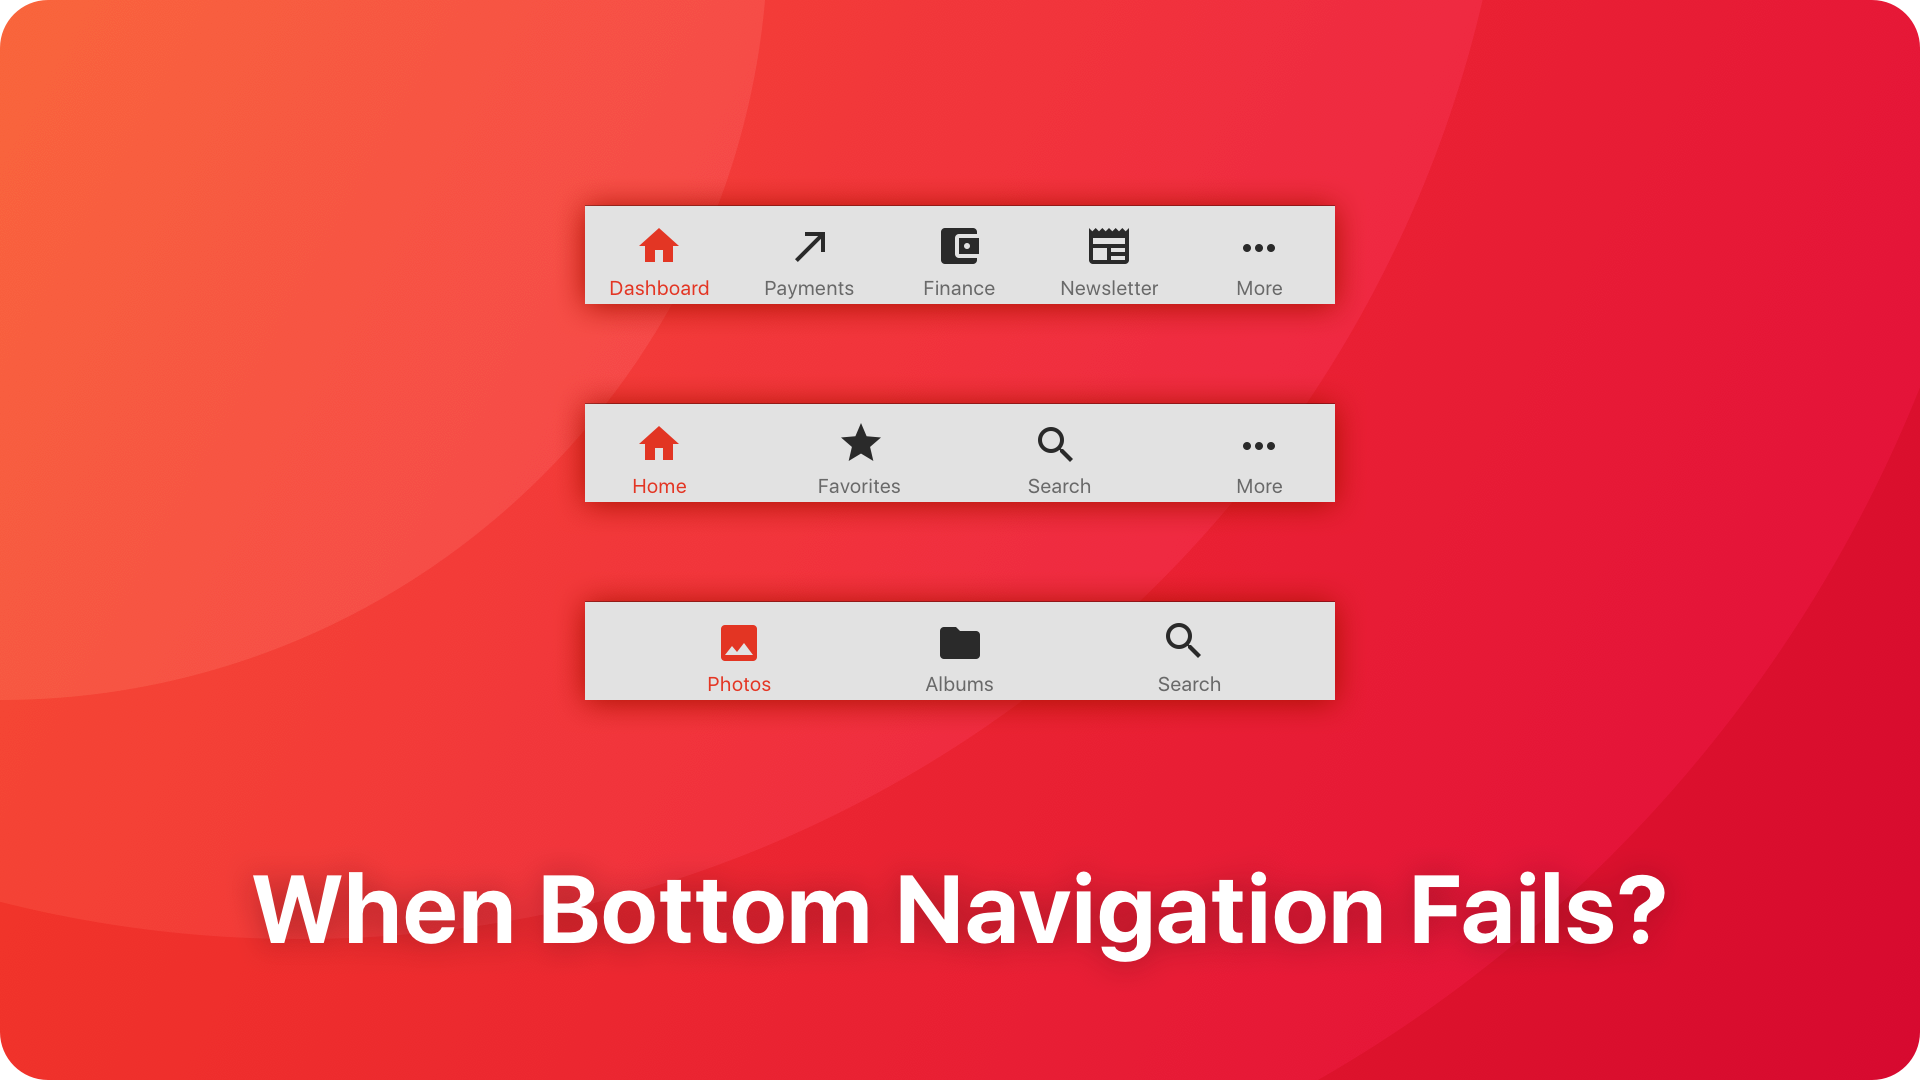 When Bottom Navigation Fails? Revealing the pain points